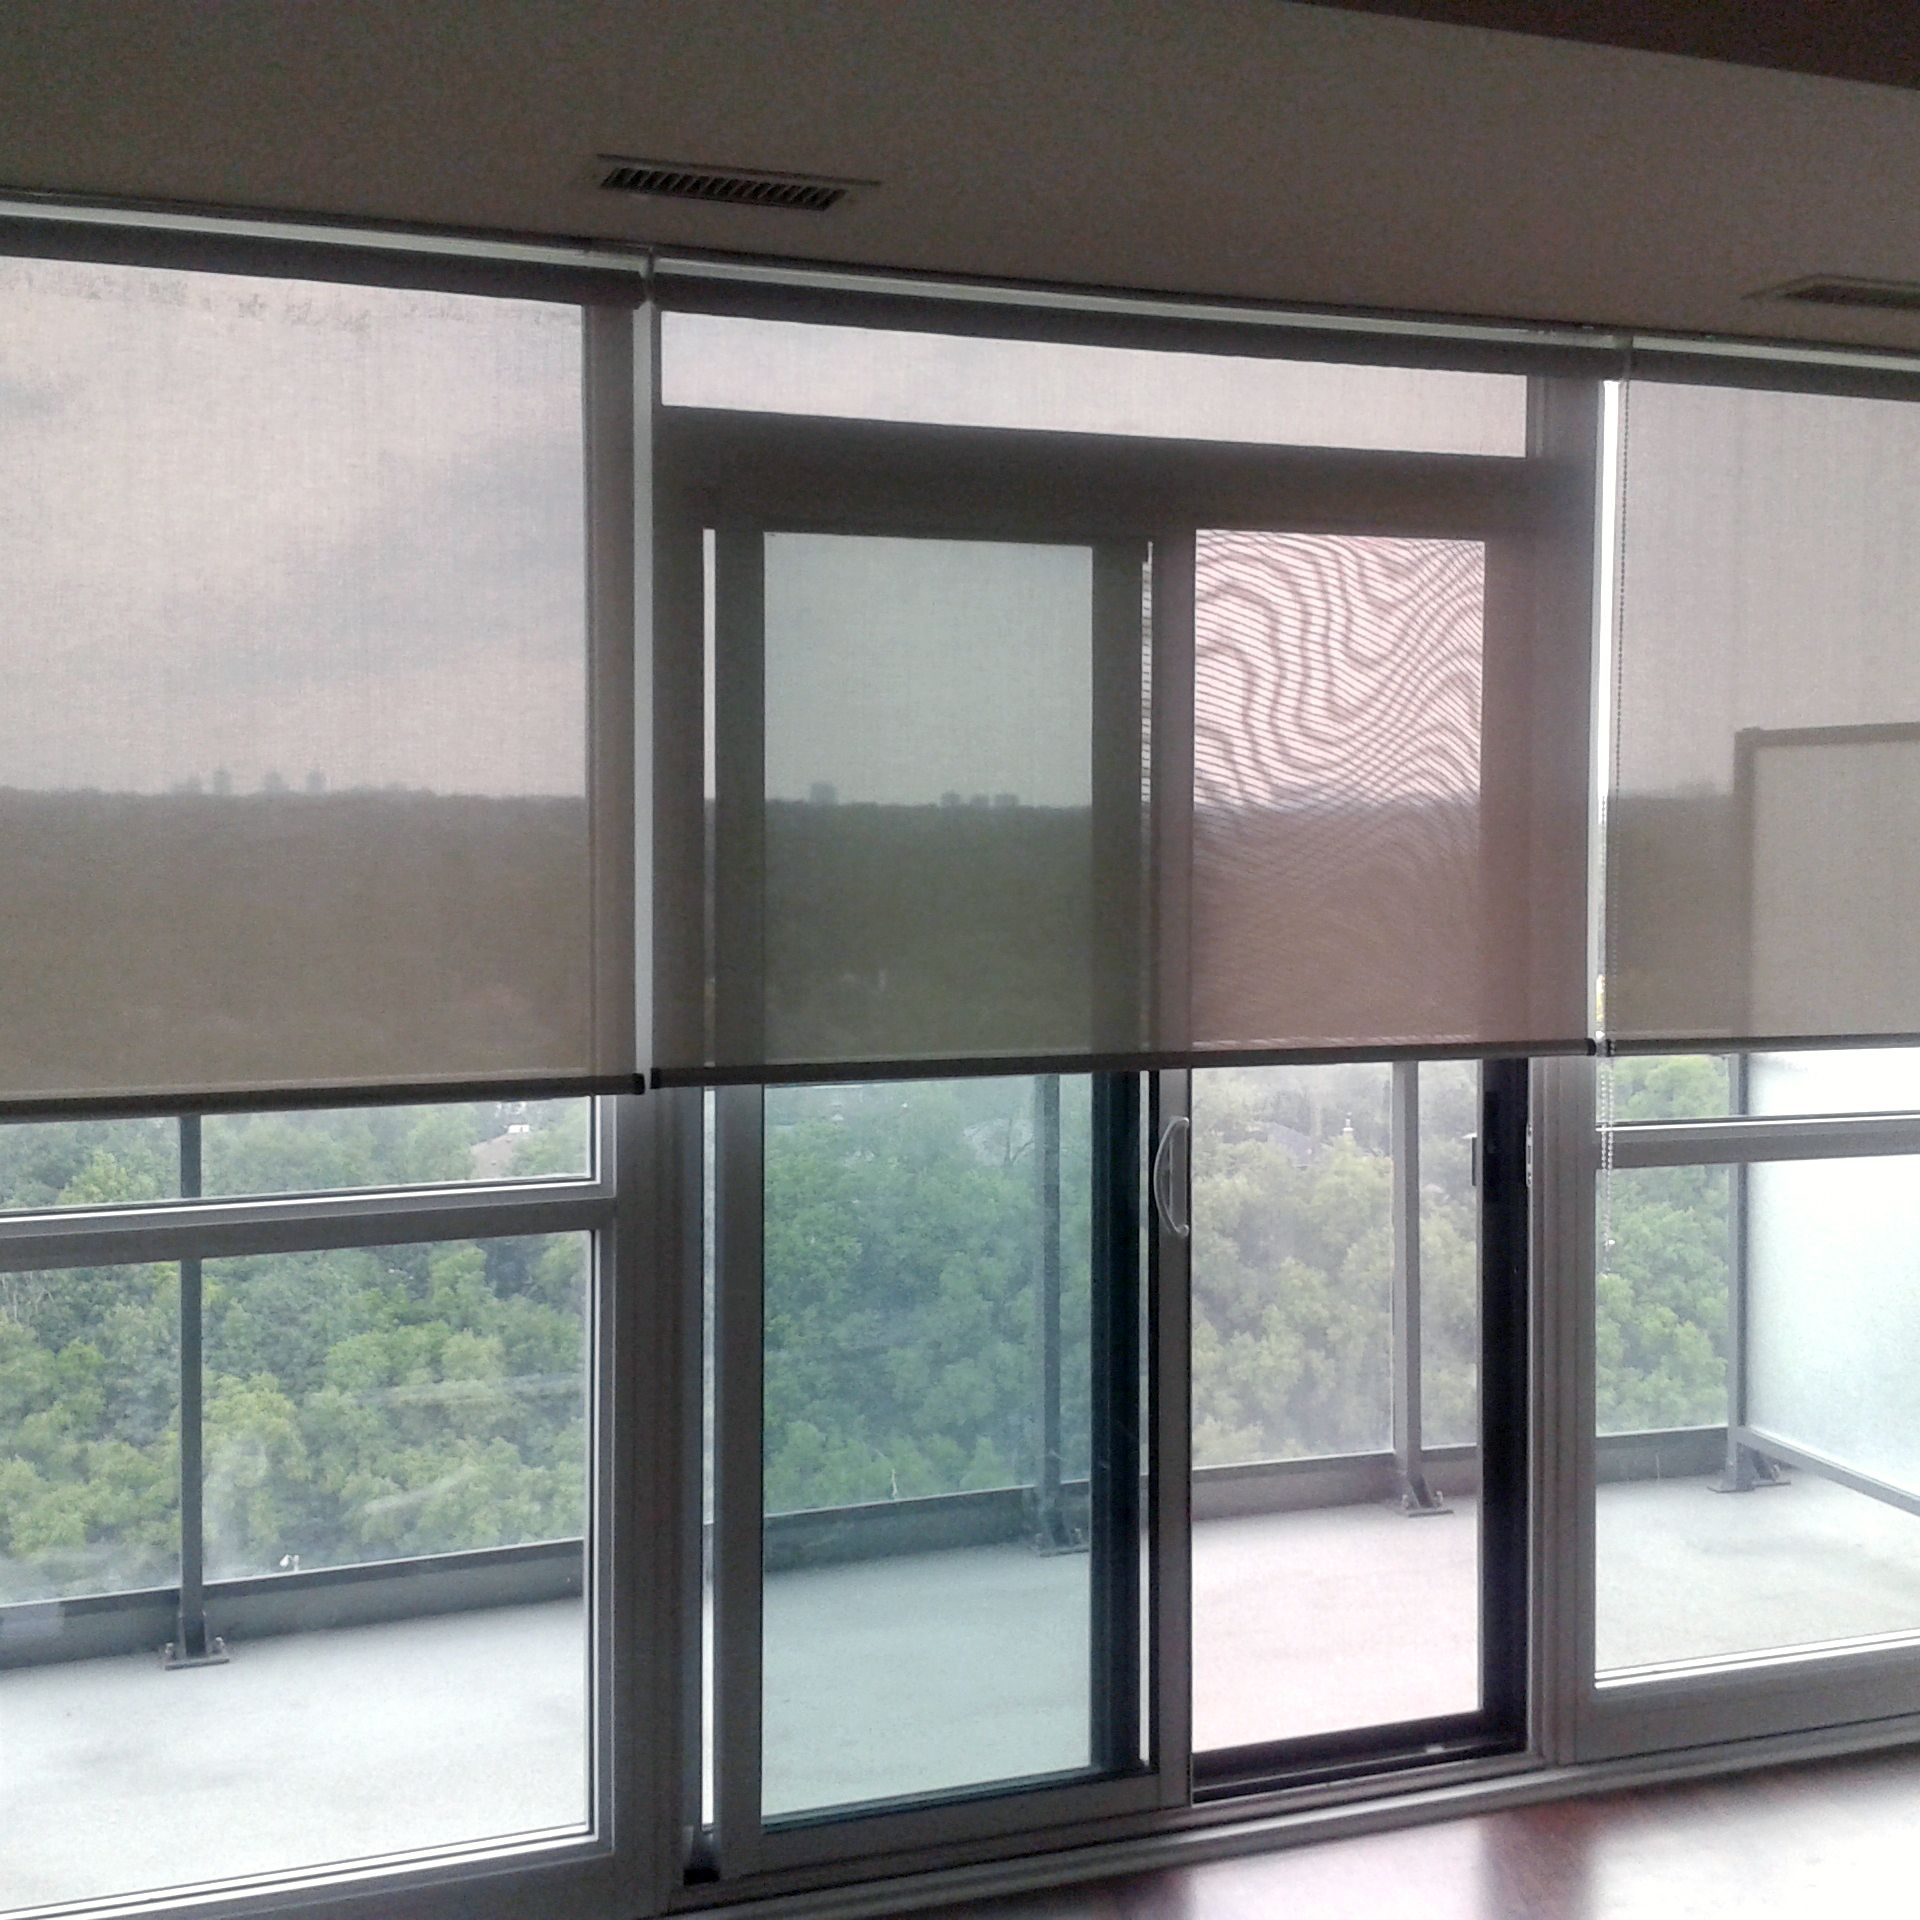 Roller screen with full view condo windows